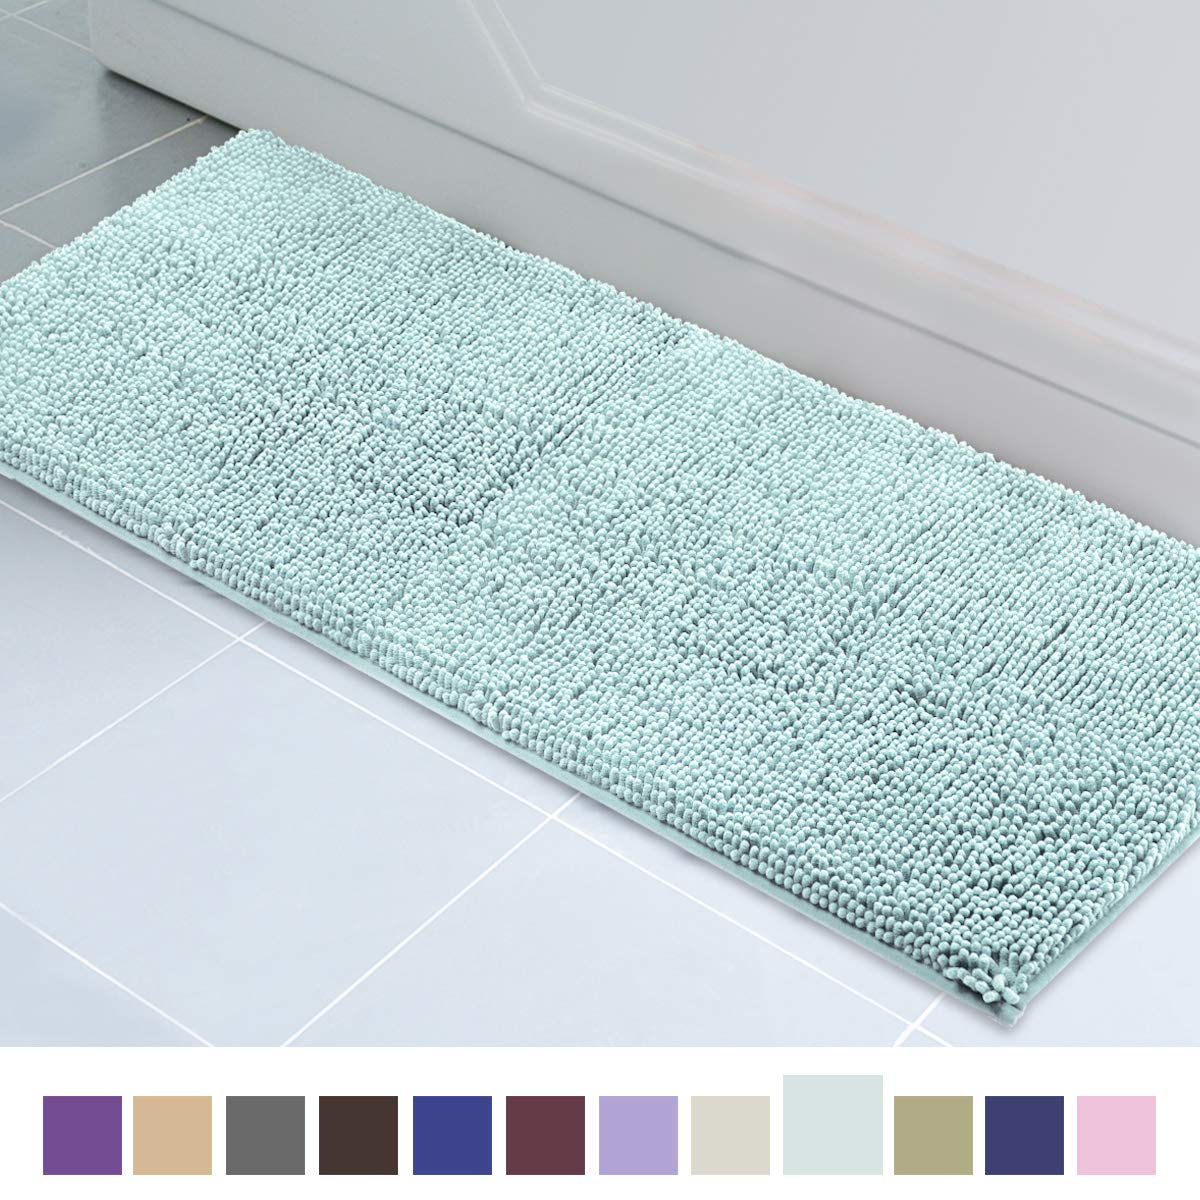 Picture of: Itsoft Non Slip Shaggy Chenille Soft Microfibers Runner Large Bath Mat For Bathroom Rug Water Absorbent Carpet Machine Washable 21 X 59 Inches Spa Blue